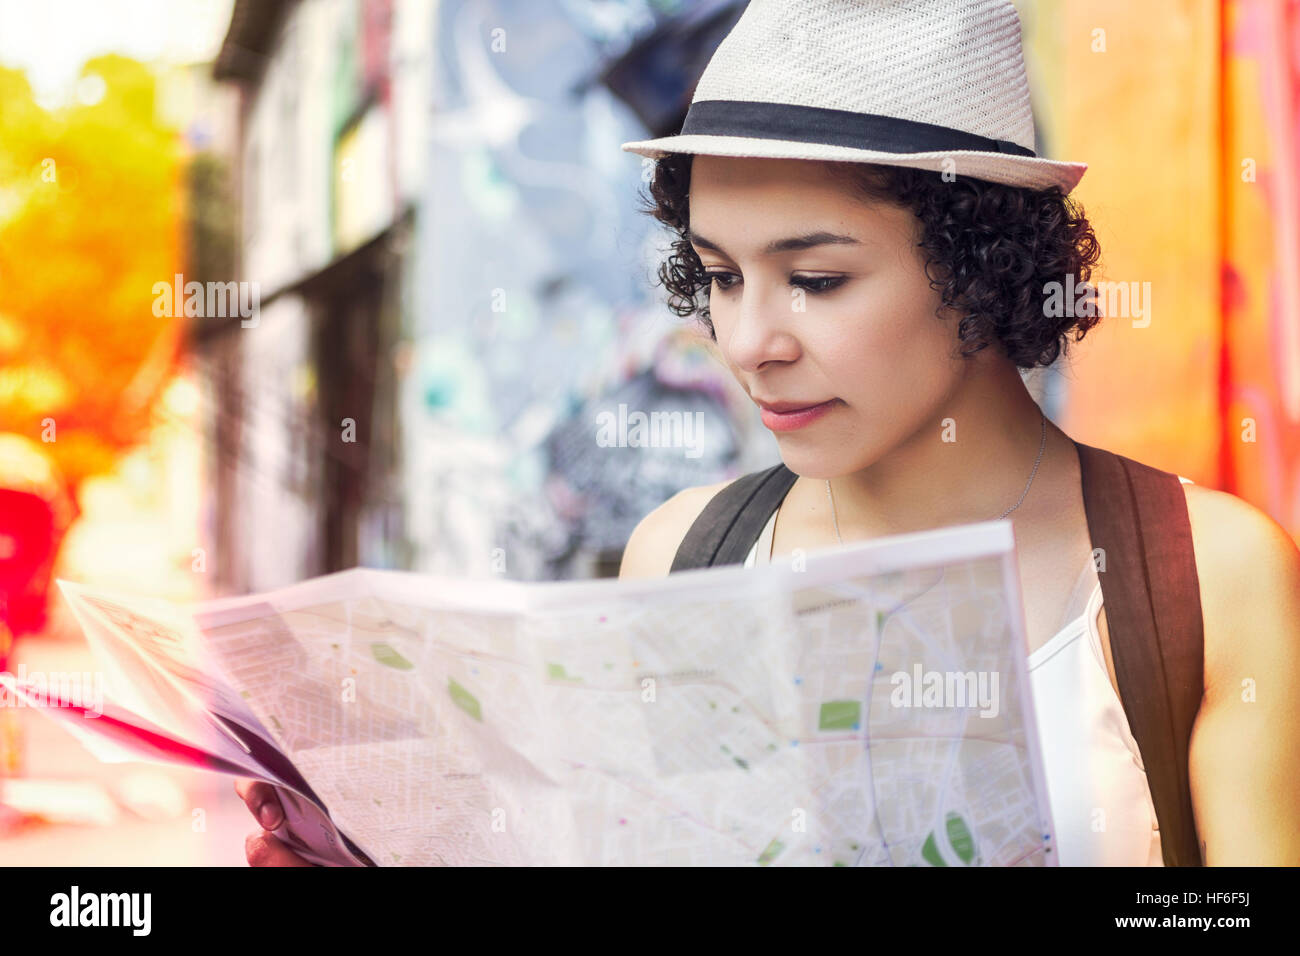 Young traveller looking at street map with touristic information. Blurred background, color filter. - Stock Image